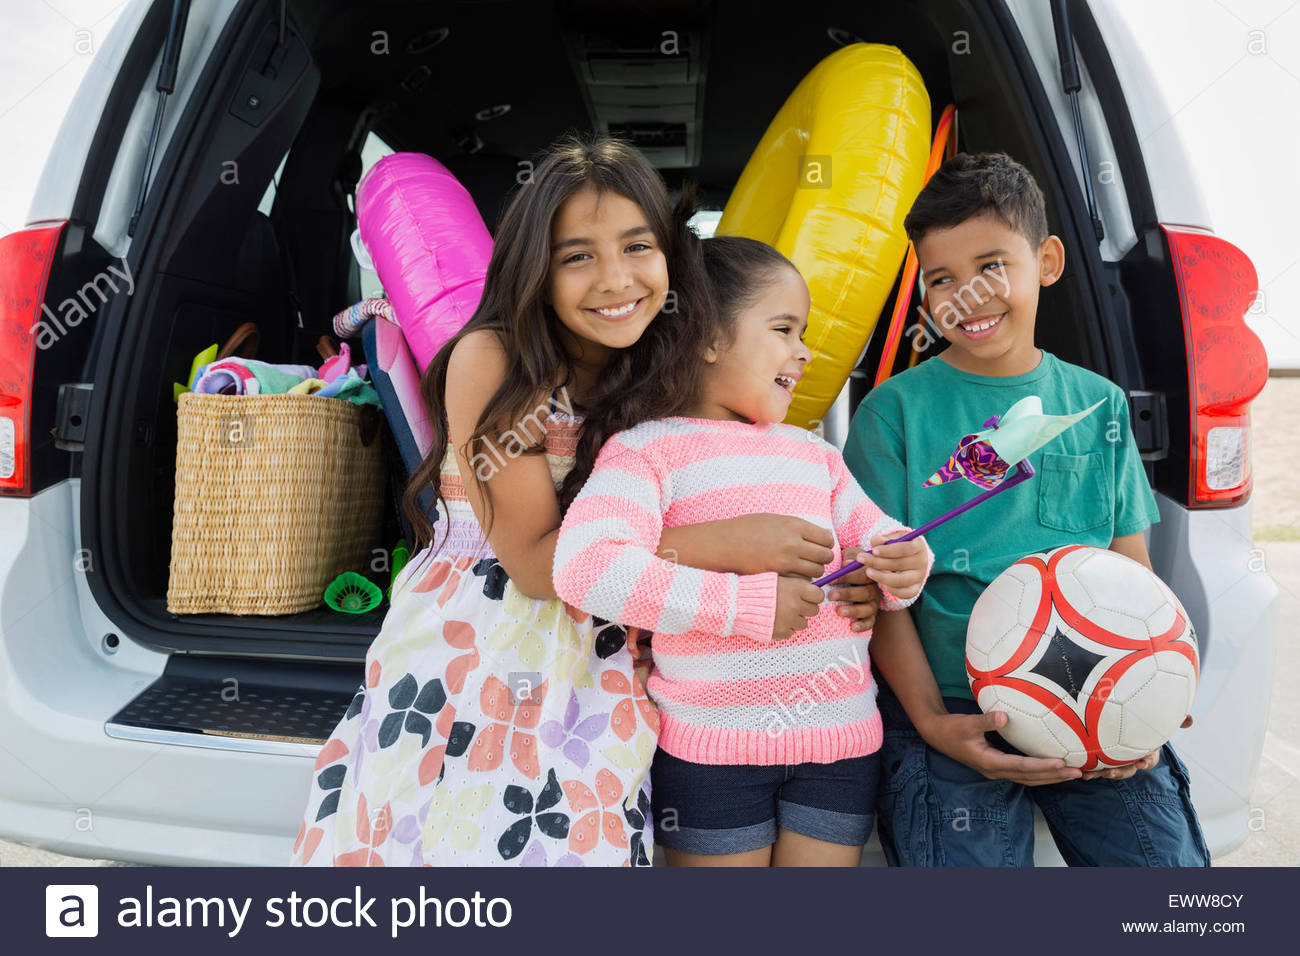 Portrait brother and sisters van arriving at beach - Stock Image